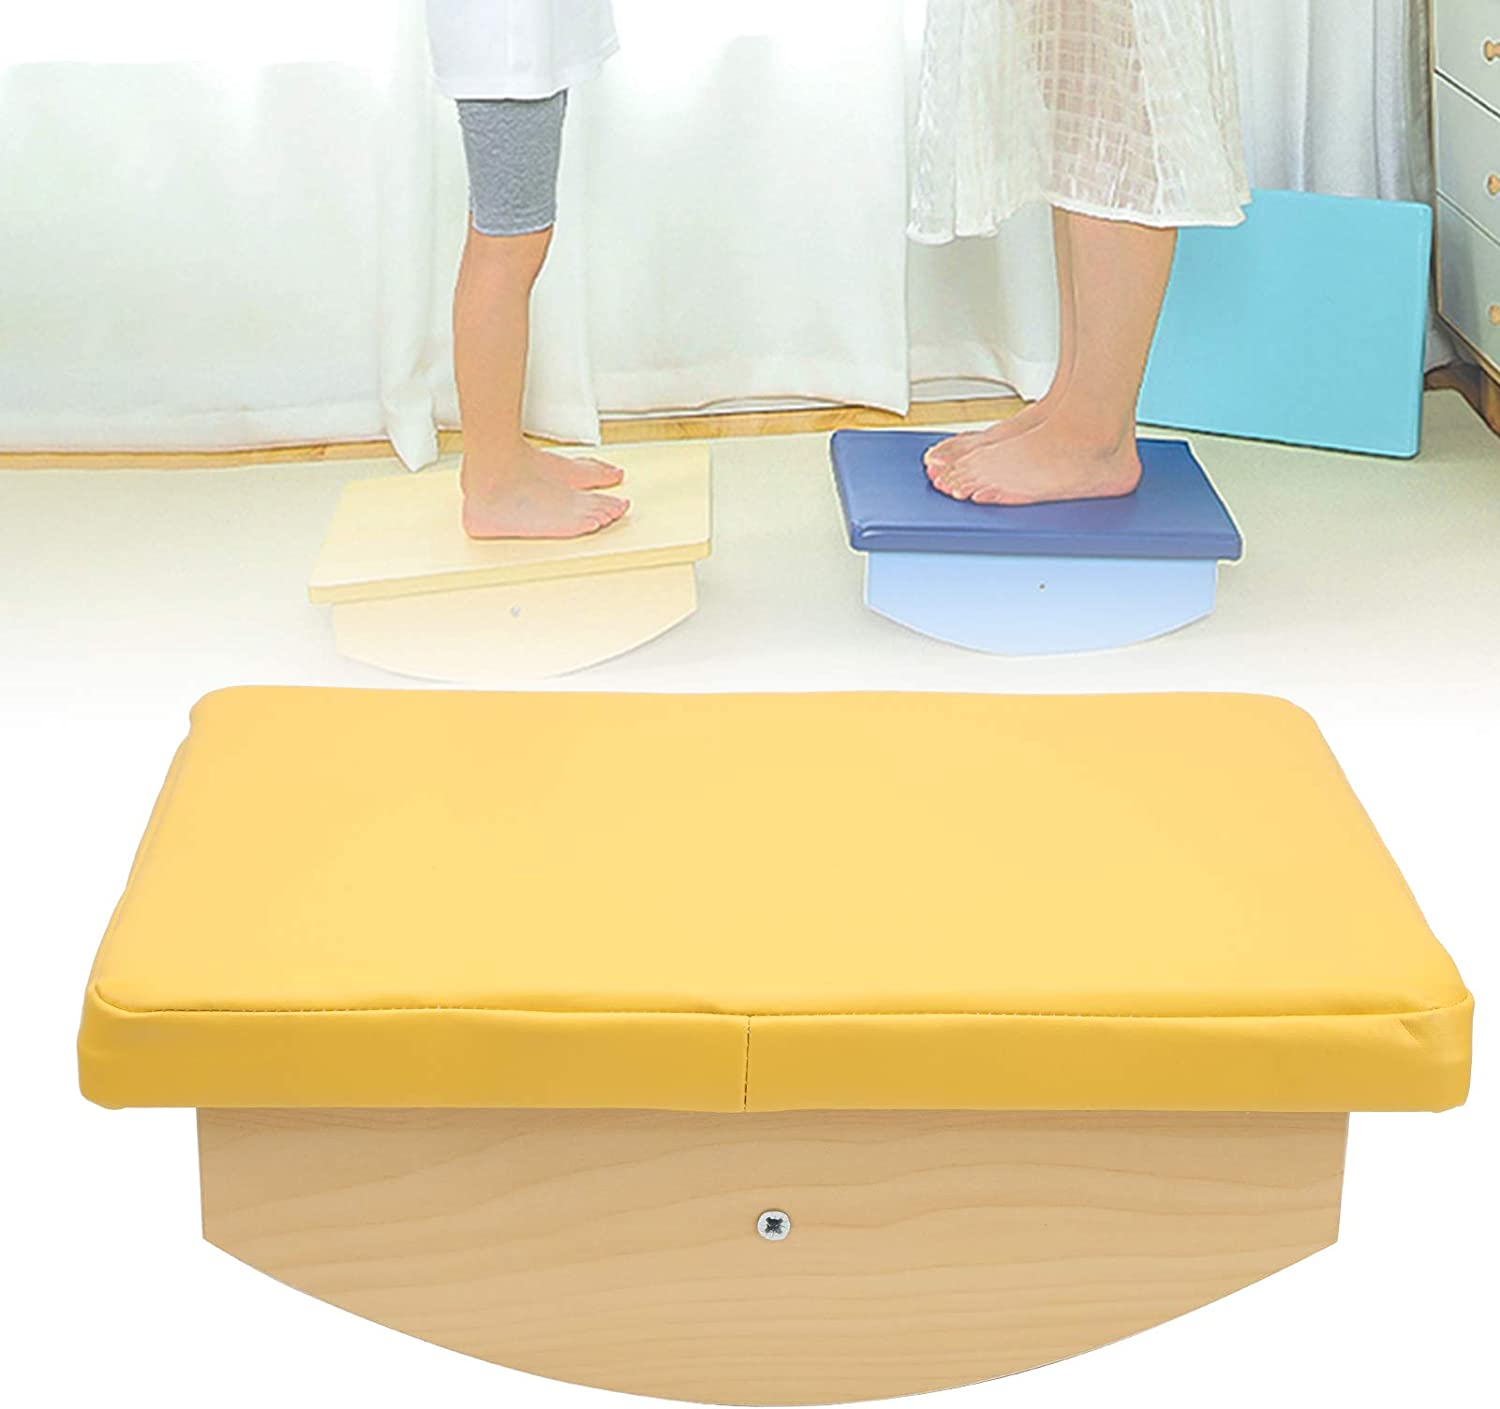 Jinyi Physical Education Toy Kids Board PU Rocking Wooden At the price and Nippon regular agency